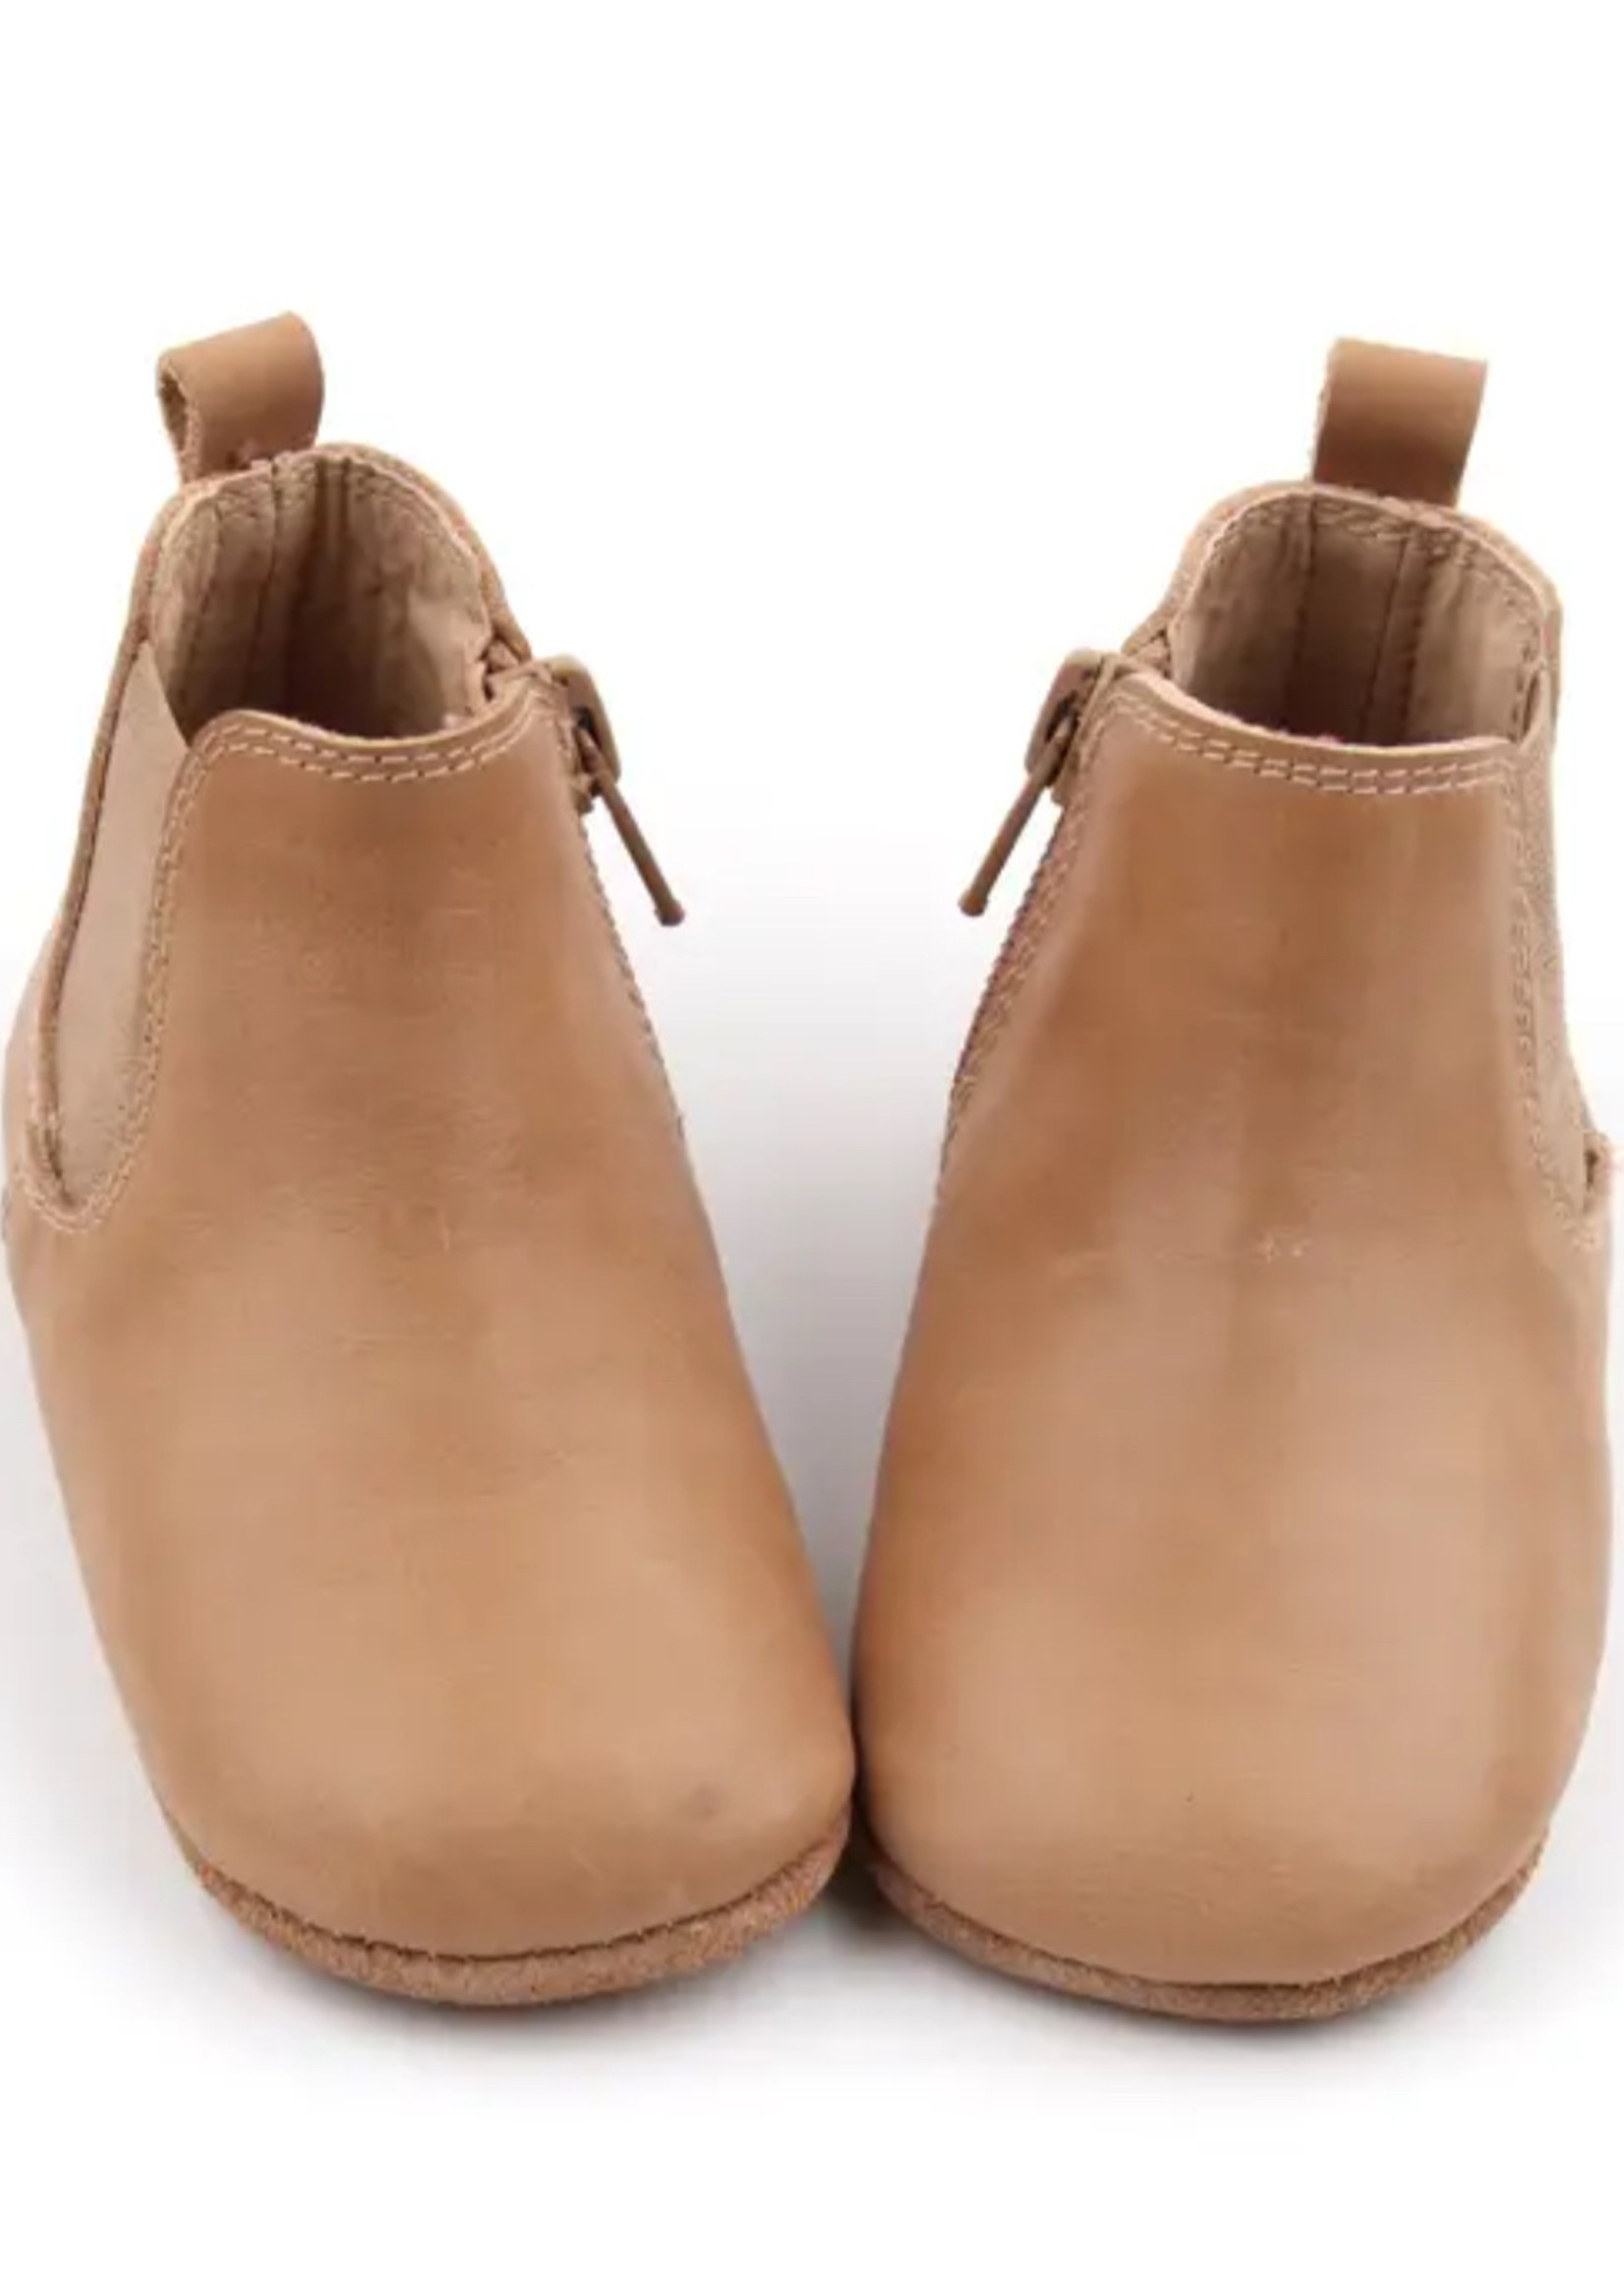 Consciously Soft Sole Baby Waxed Leather Boots